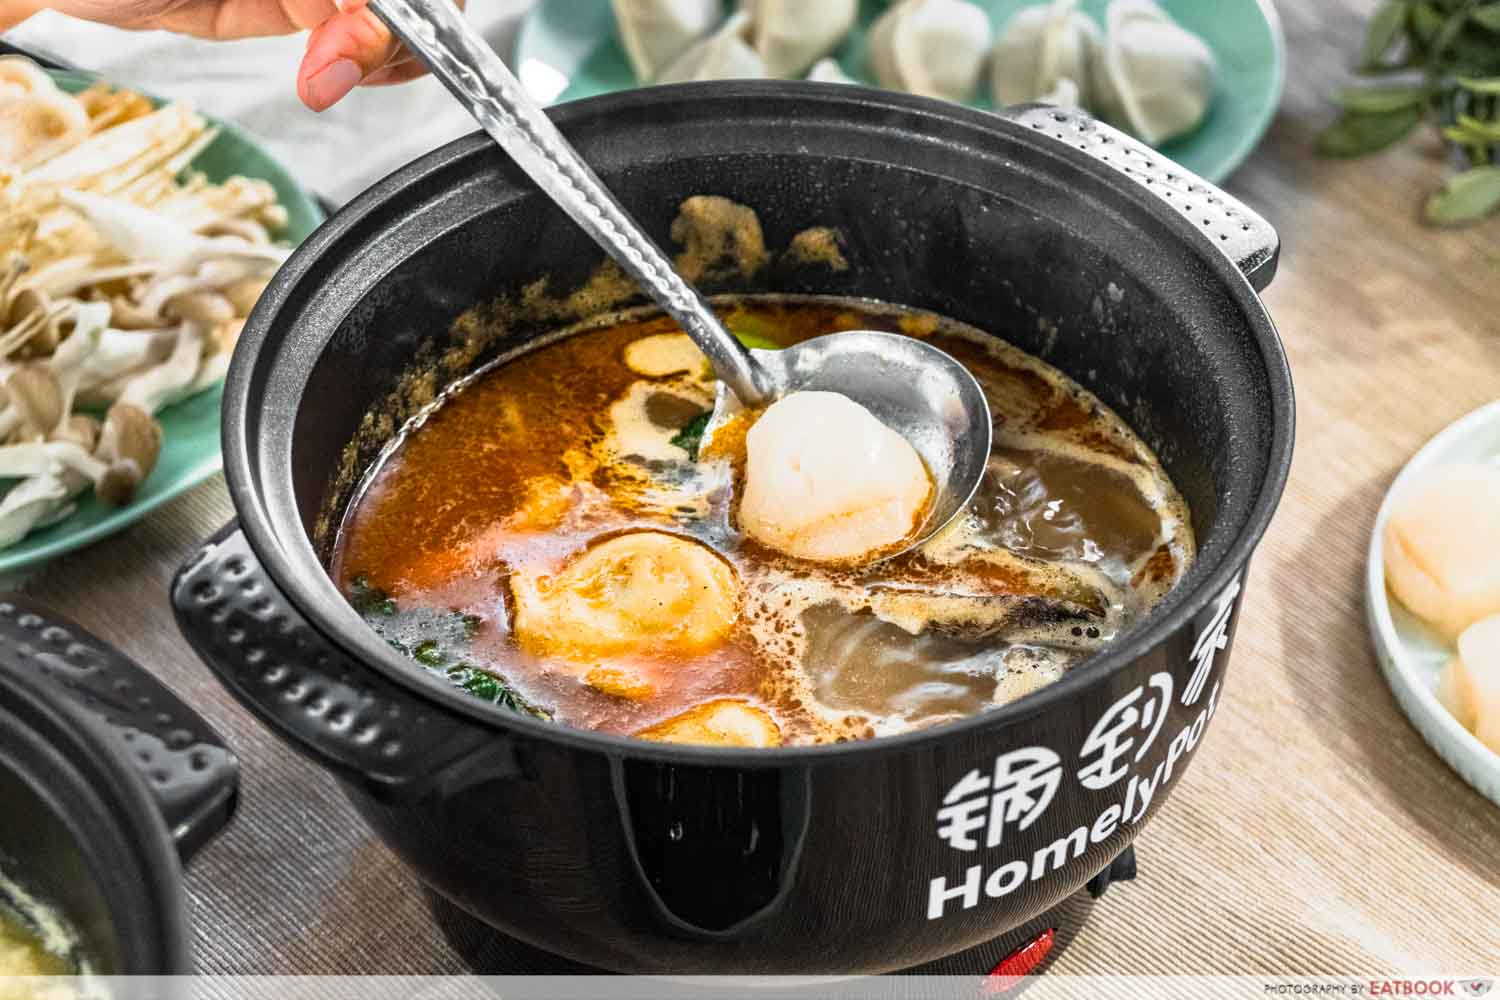 homelypot - scallop